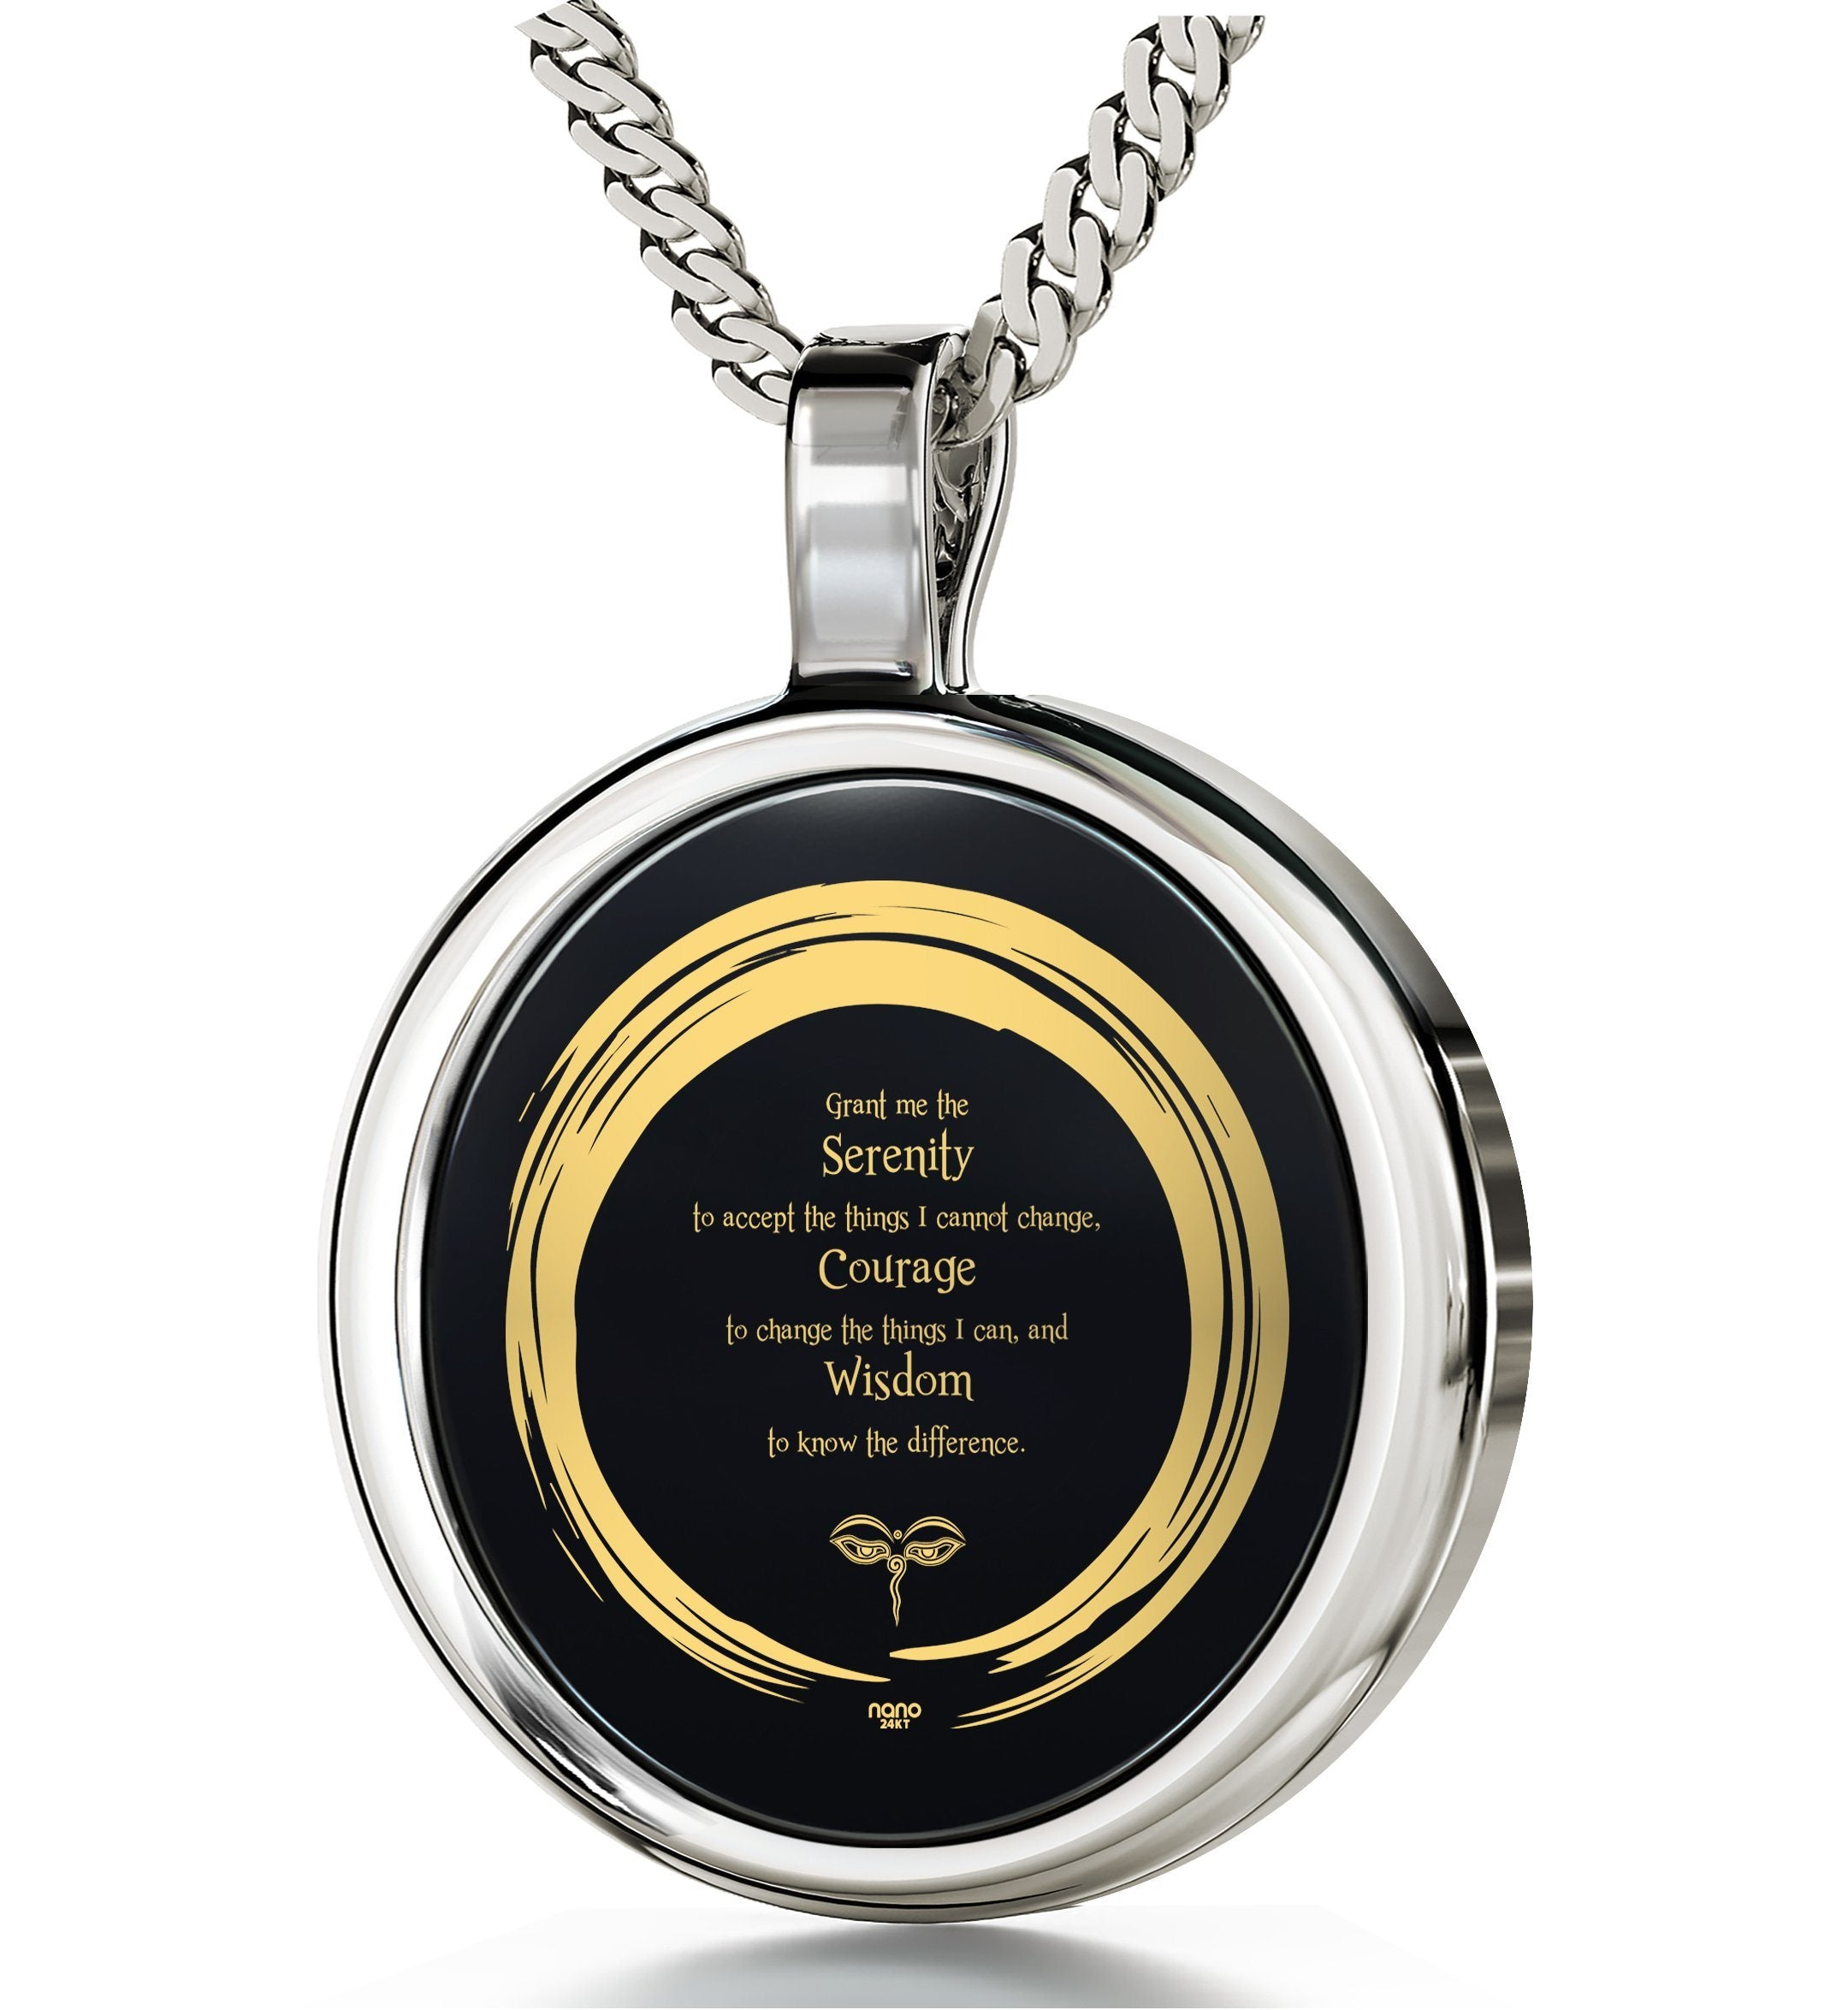 Serenity Prayer Necklace: Great Gifts for Her, Womens Birthday Presents, Nano Jewelry